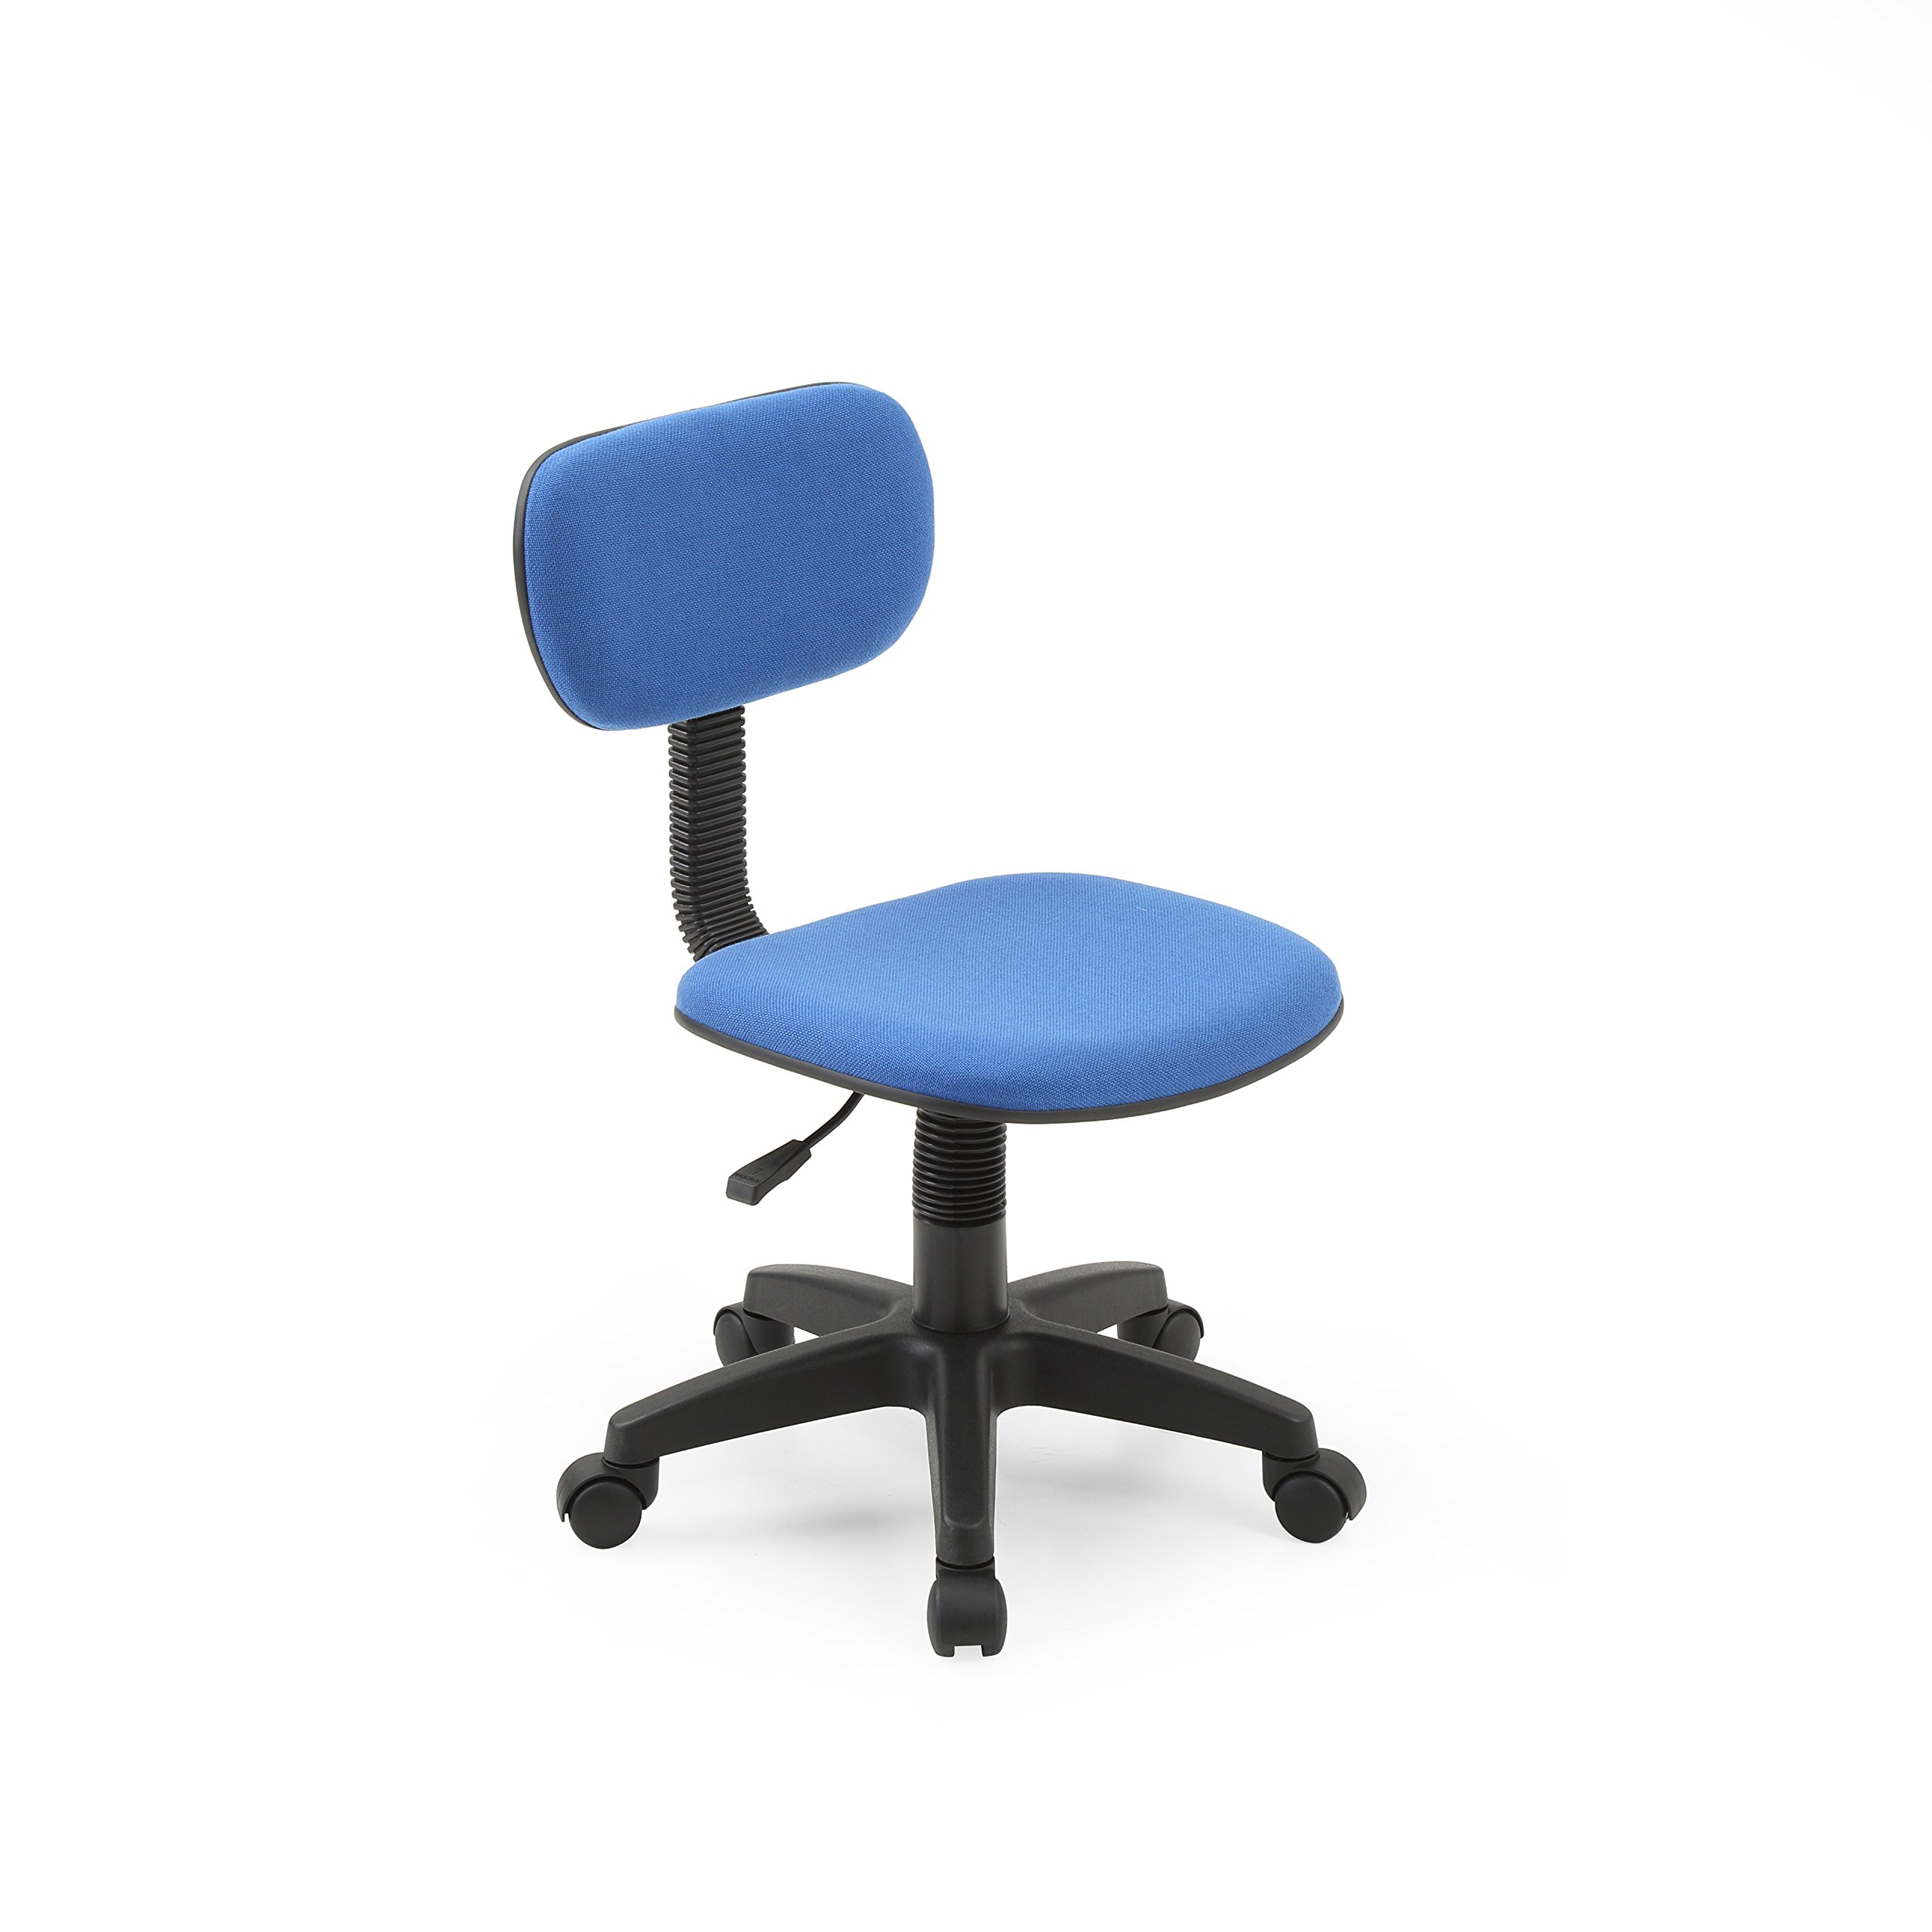 Hodedah Armless, Low-Back, Adjustable Height, Swiveling Task Chair with Padded Back and Seat in Blue by HODEDAH IMPORT